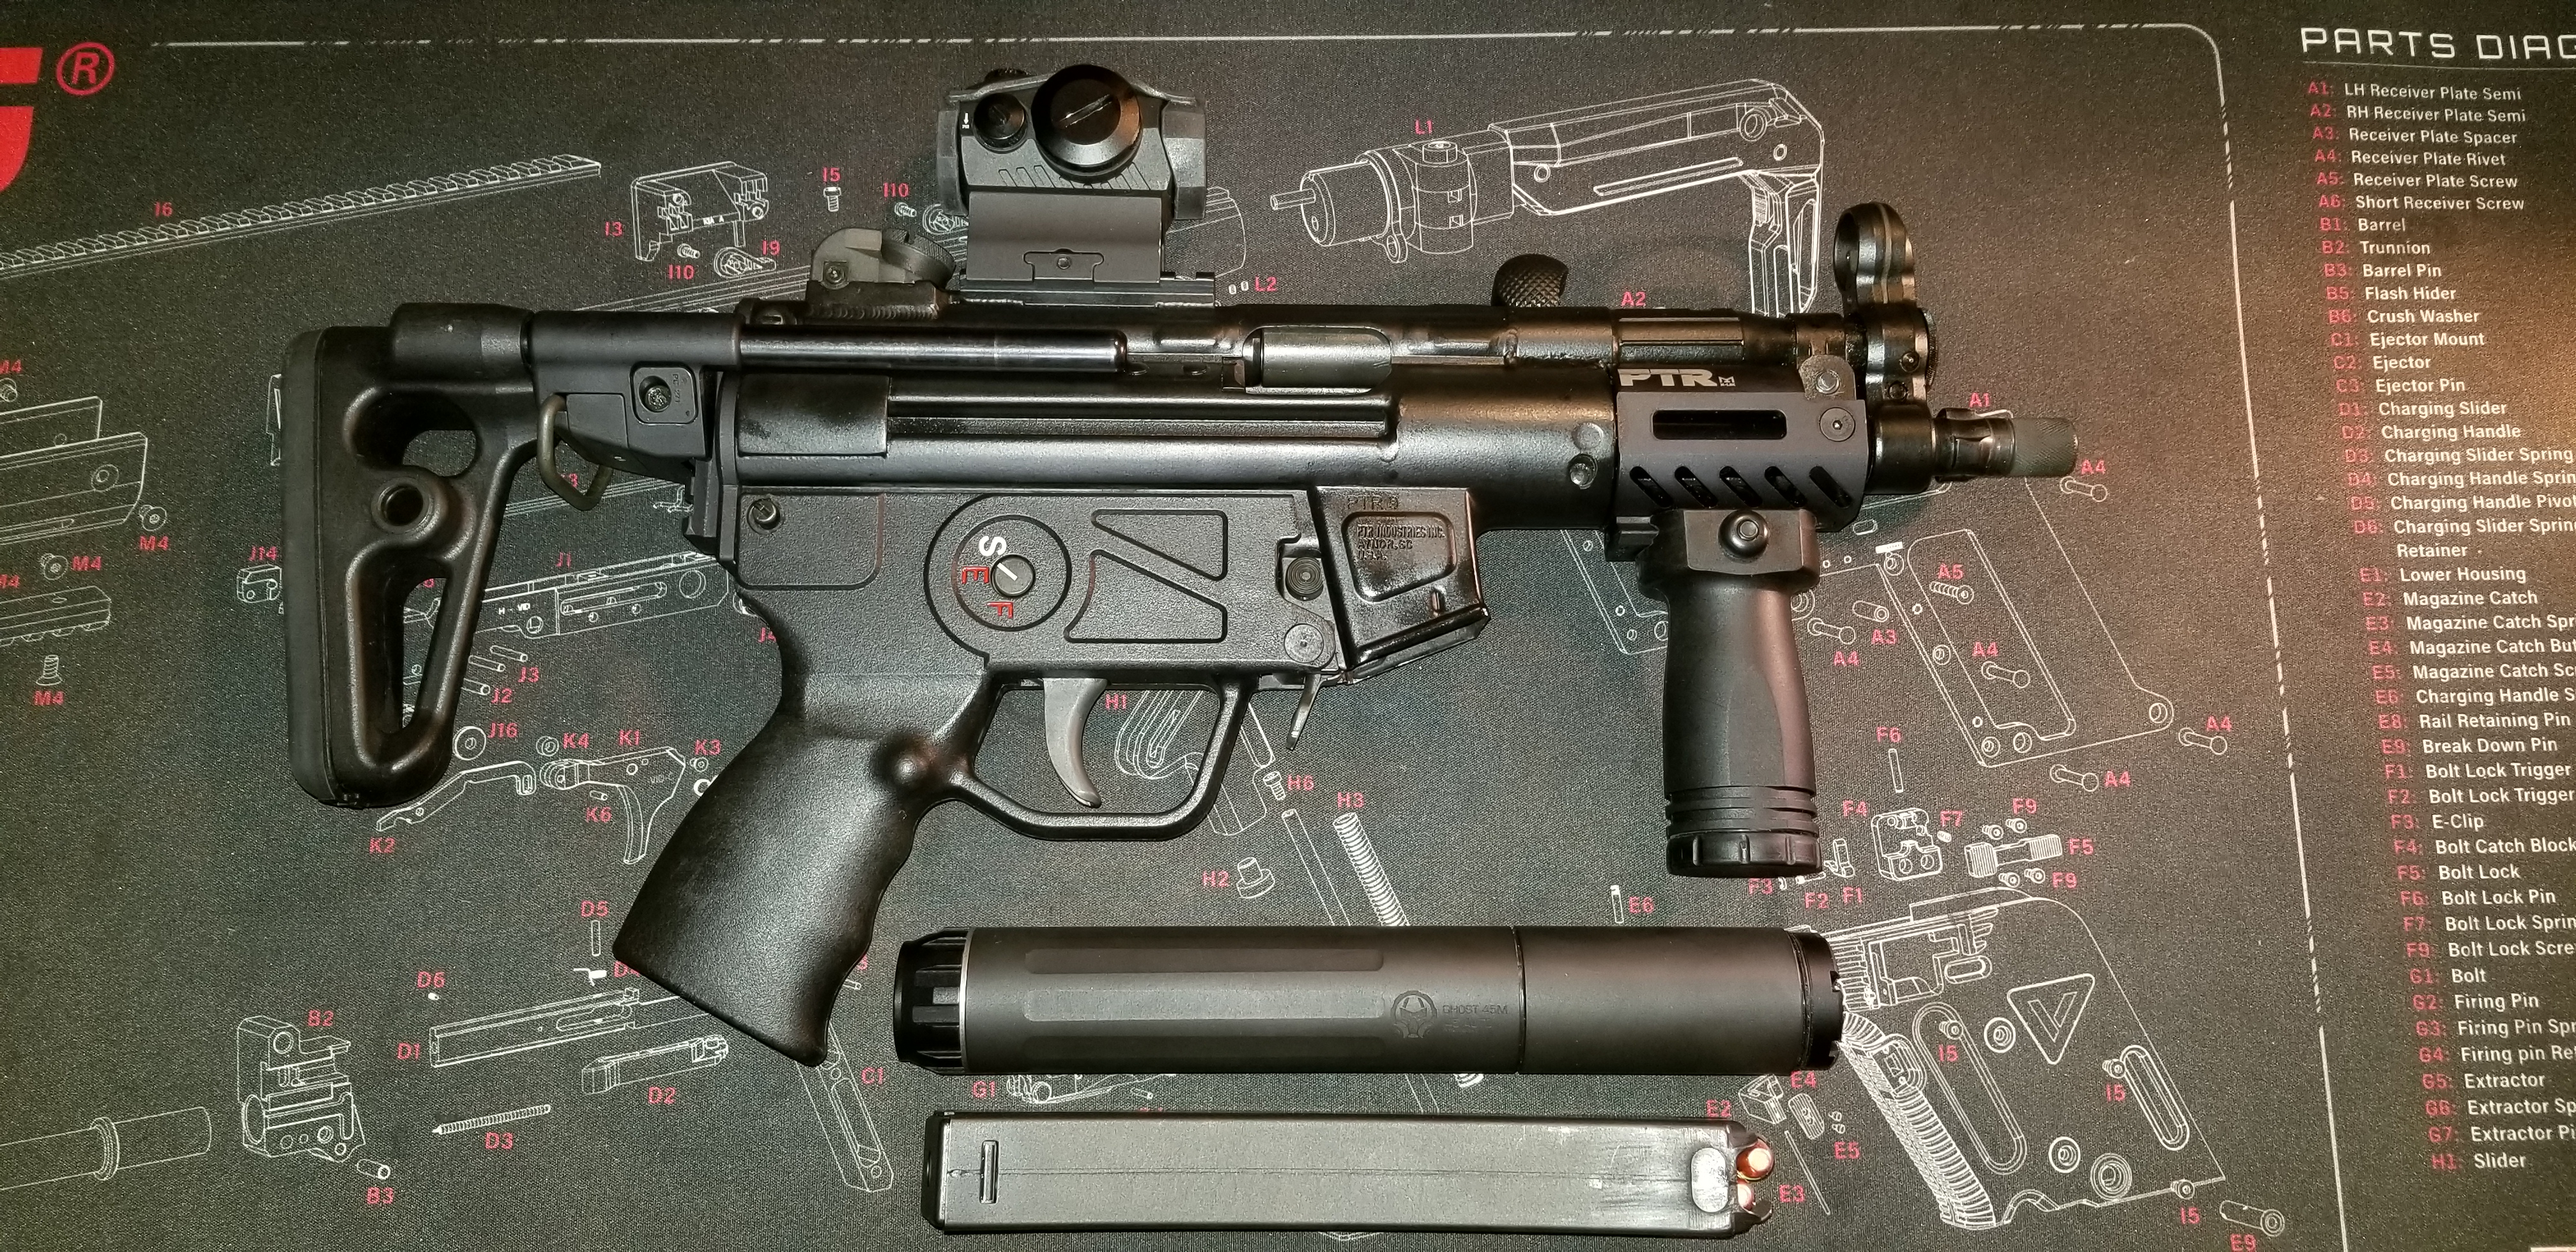 Will the sig MPX fixed folder stock work on a ptr9kt?-20200220_175520.jpg